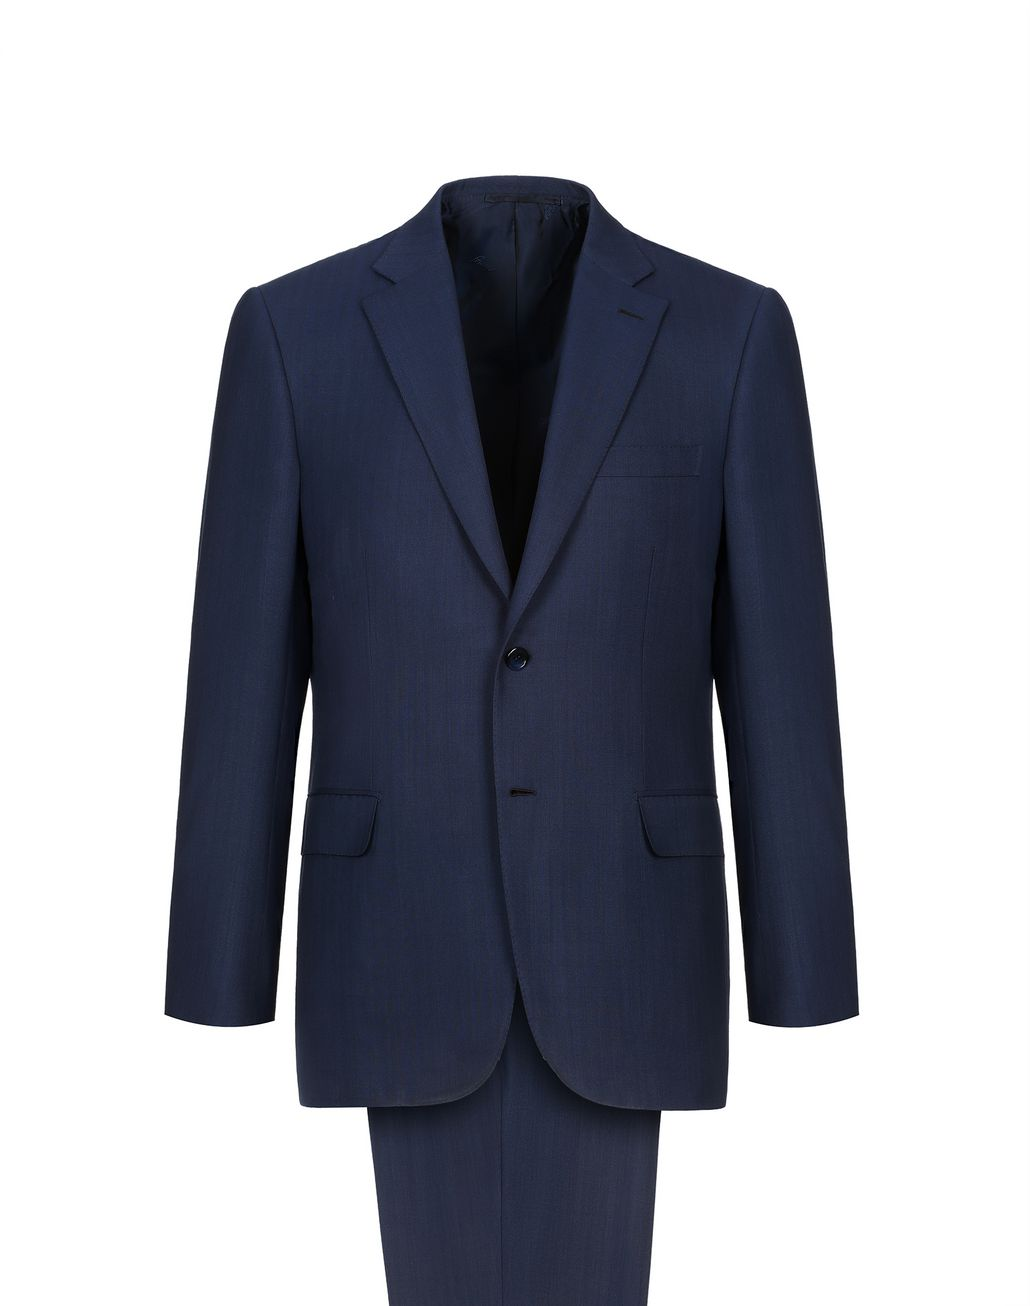 BRIONI Navy Blue Herringbone Brunico Suit Suits & Jackets Man f